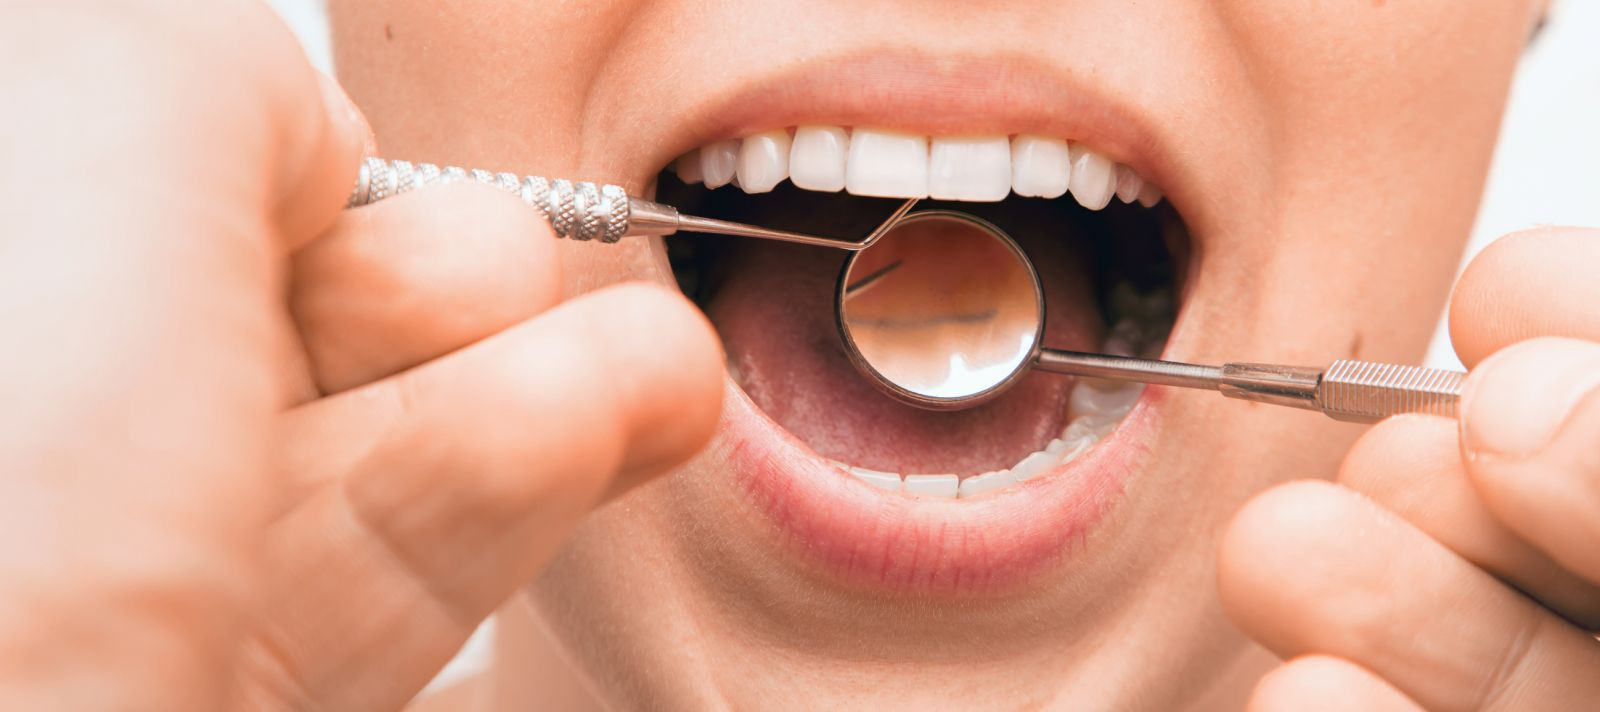 The Influence Of Oral Health On Your Overall Health